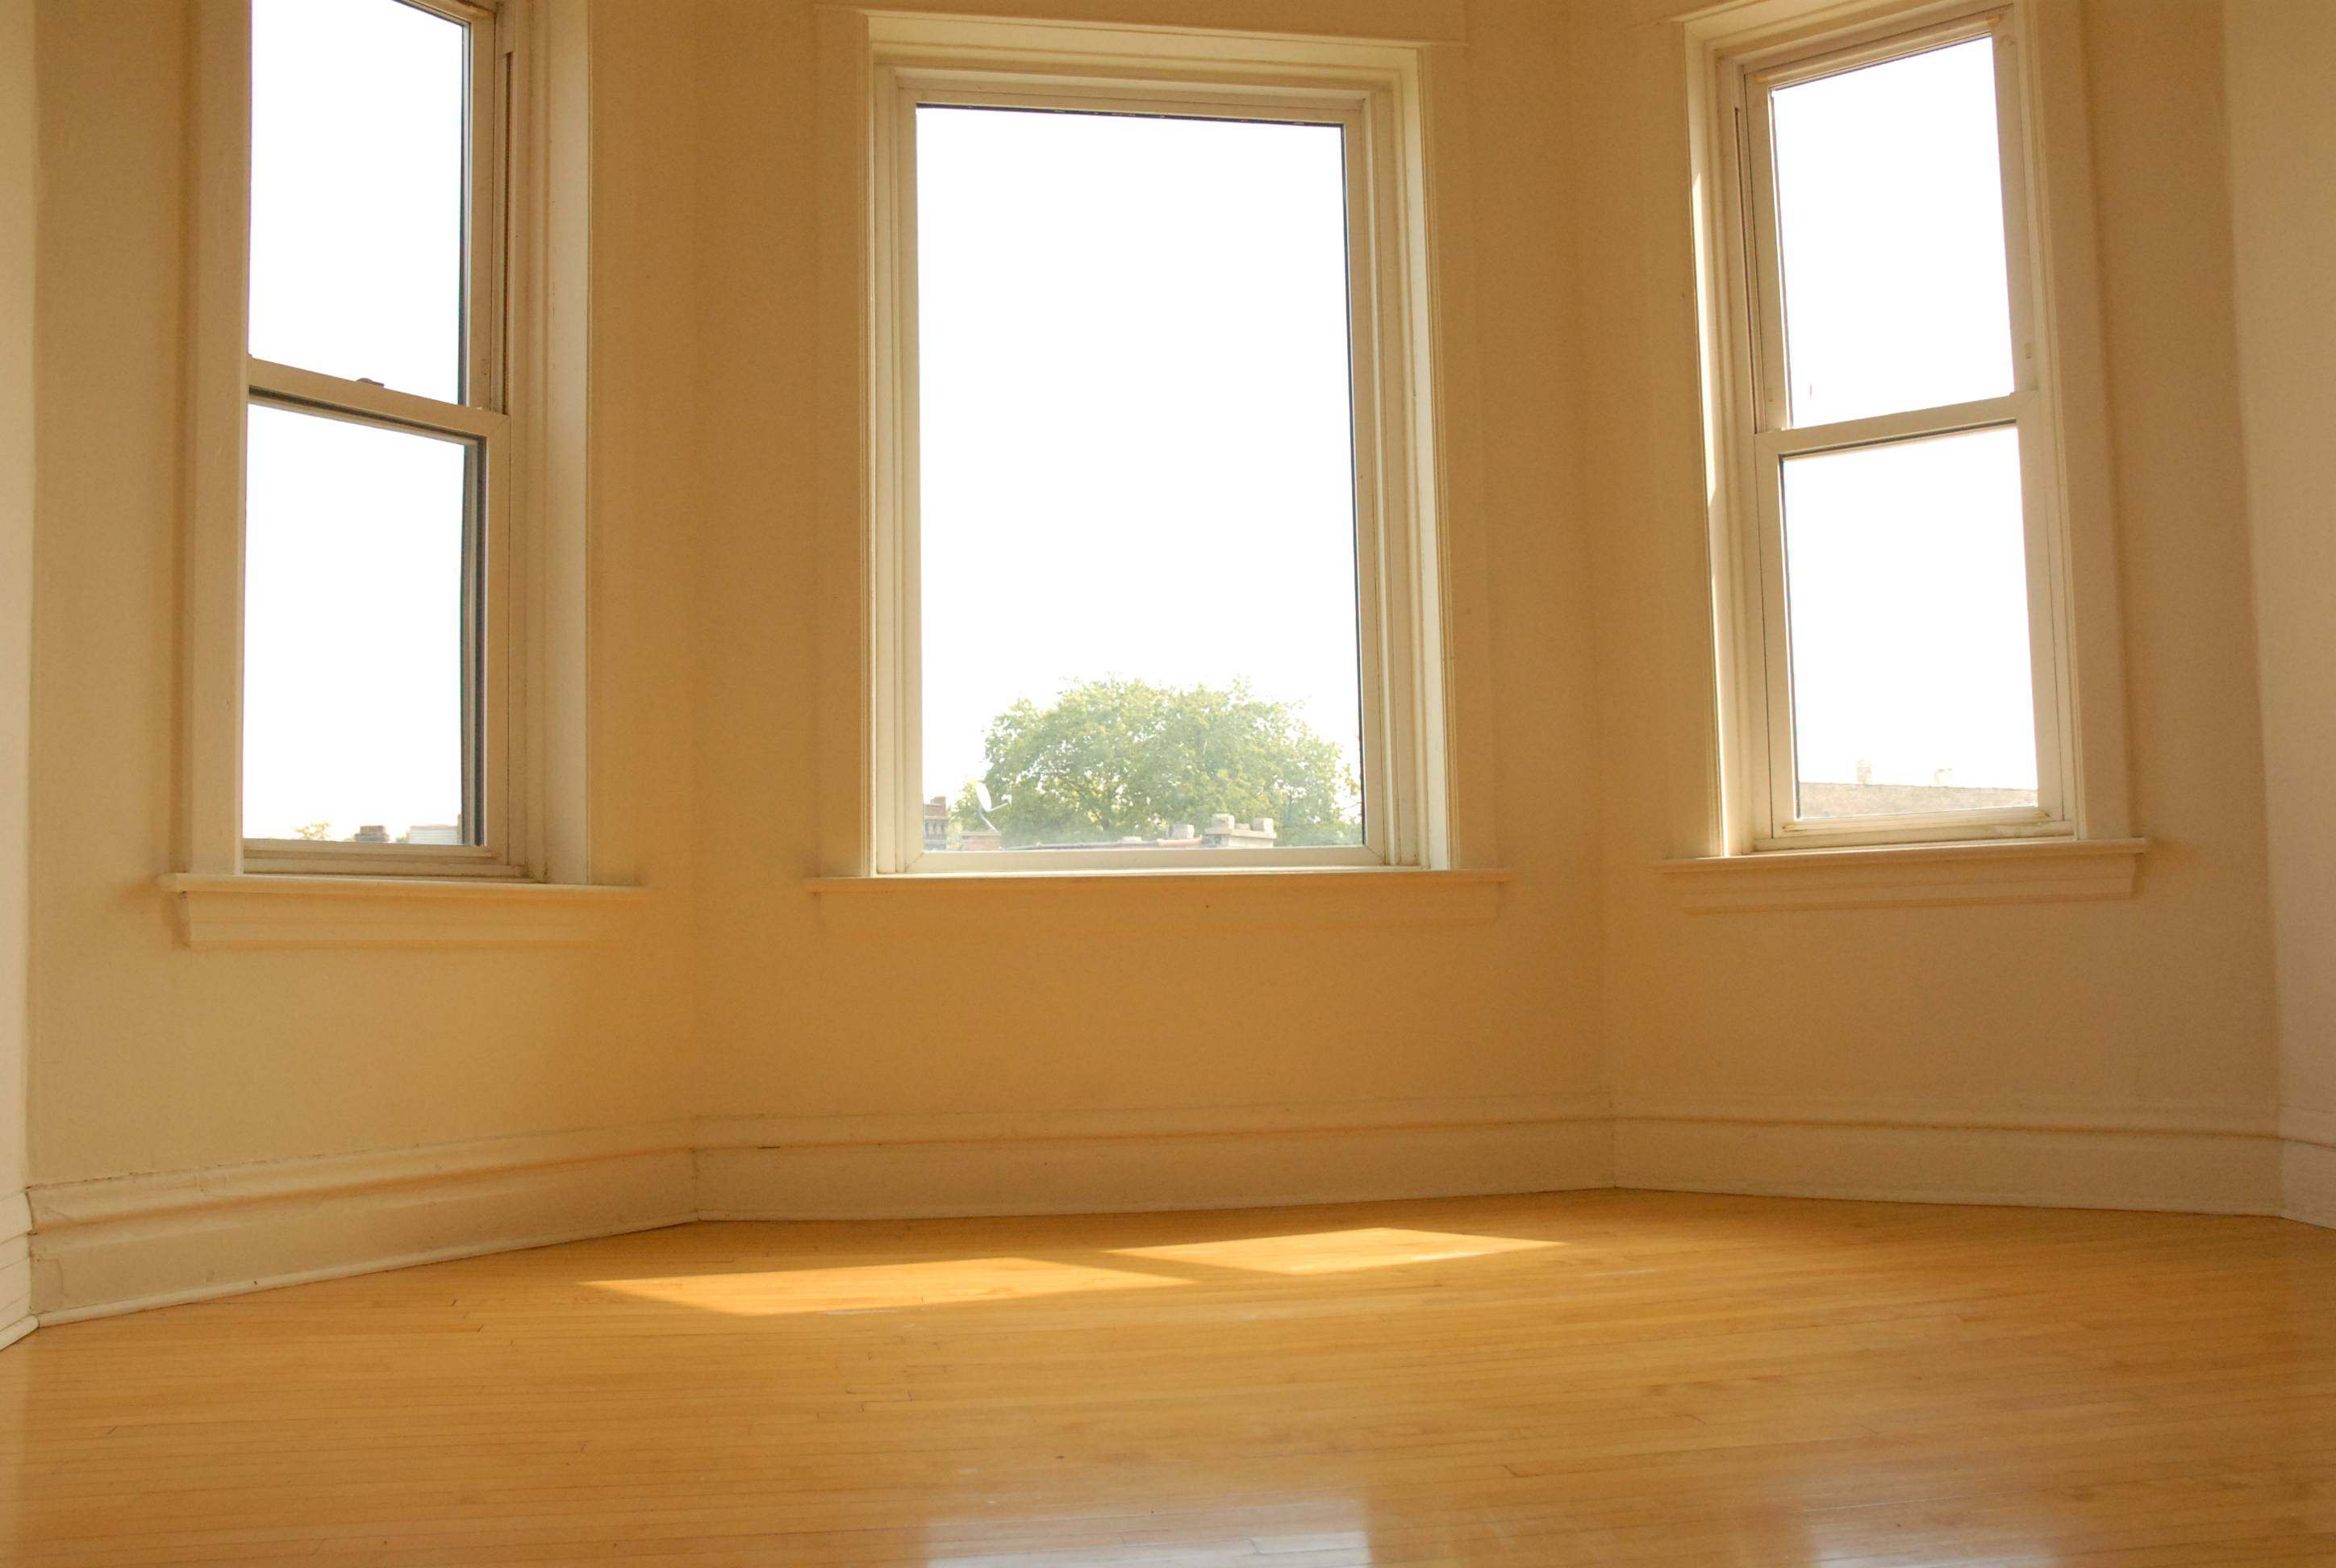 Rent this three bedroom apartment in humboldt park for - Three bedroom apartment for rent ...